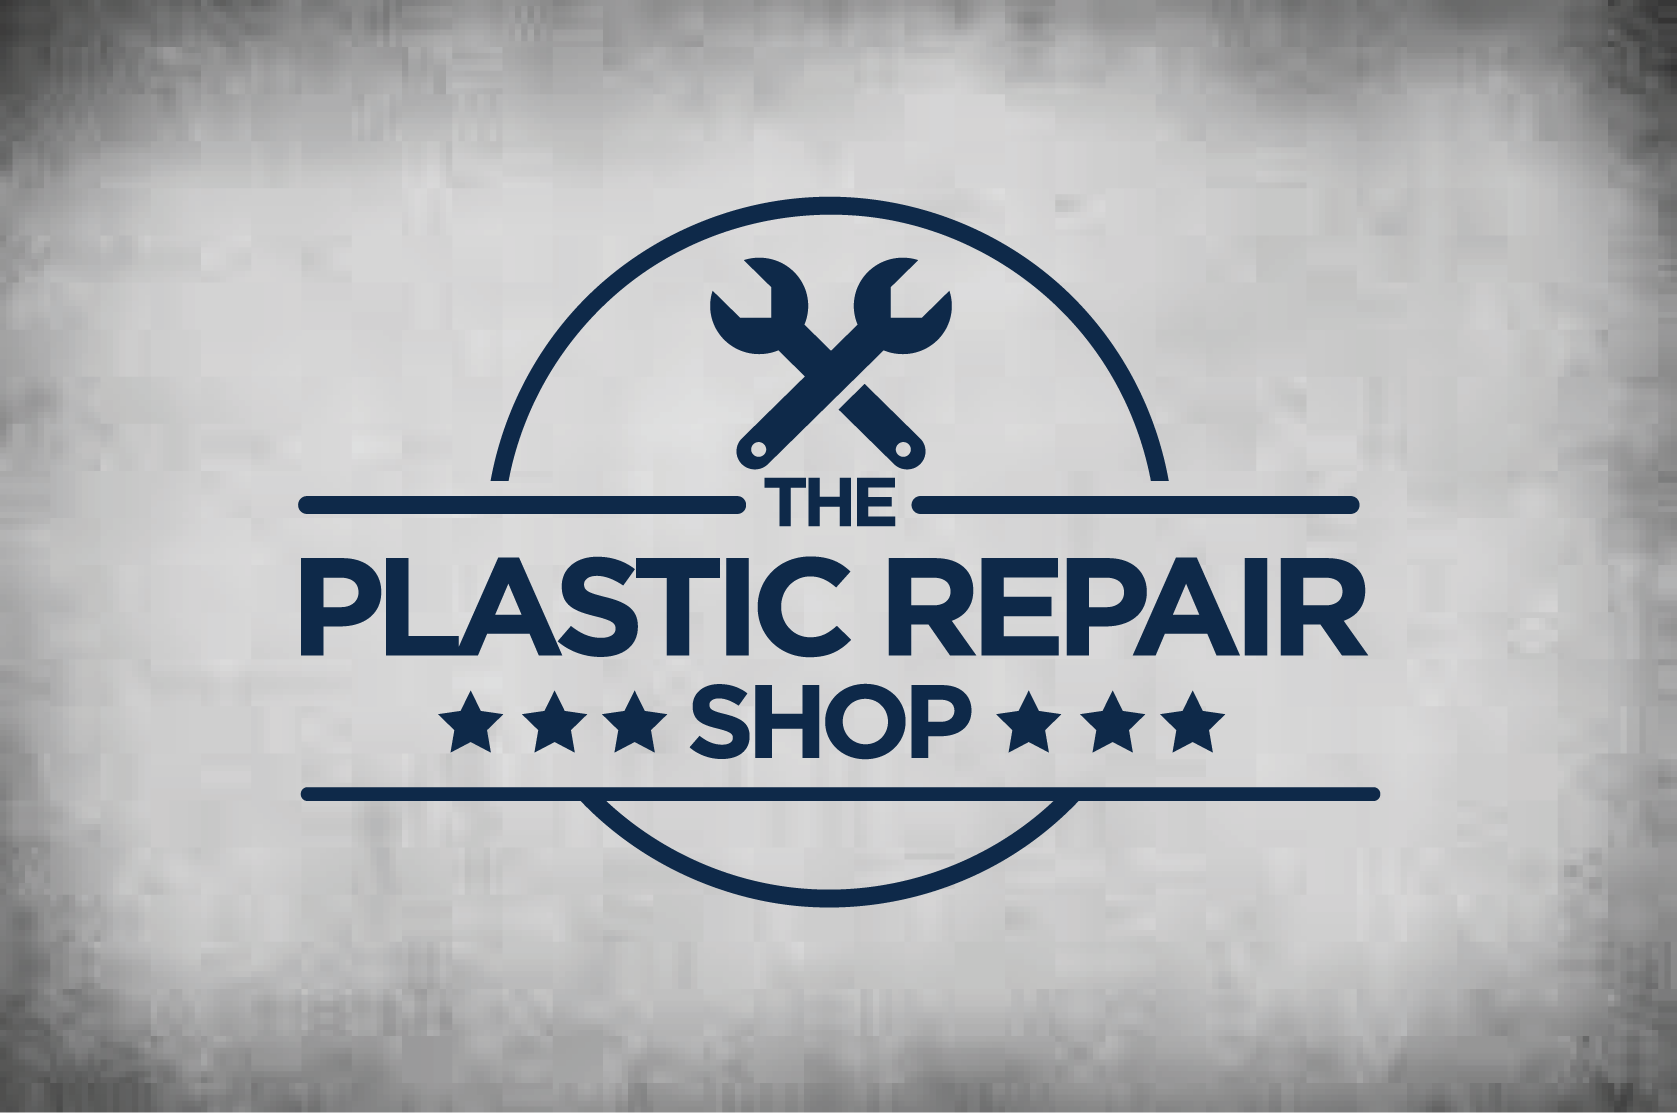 The Plastic Repair Shop